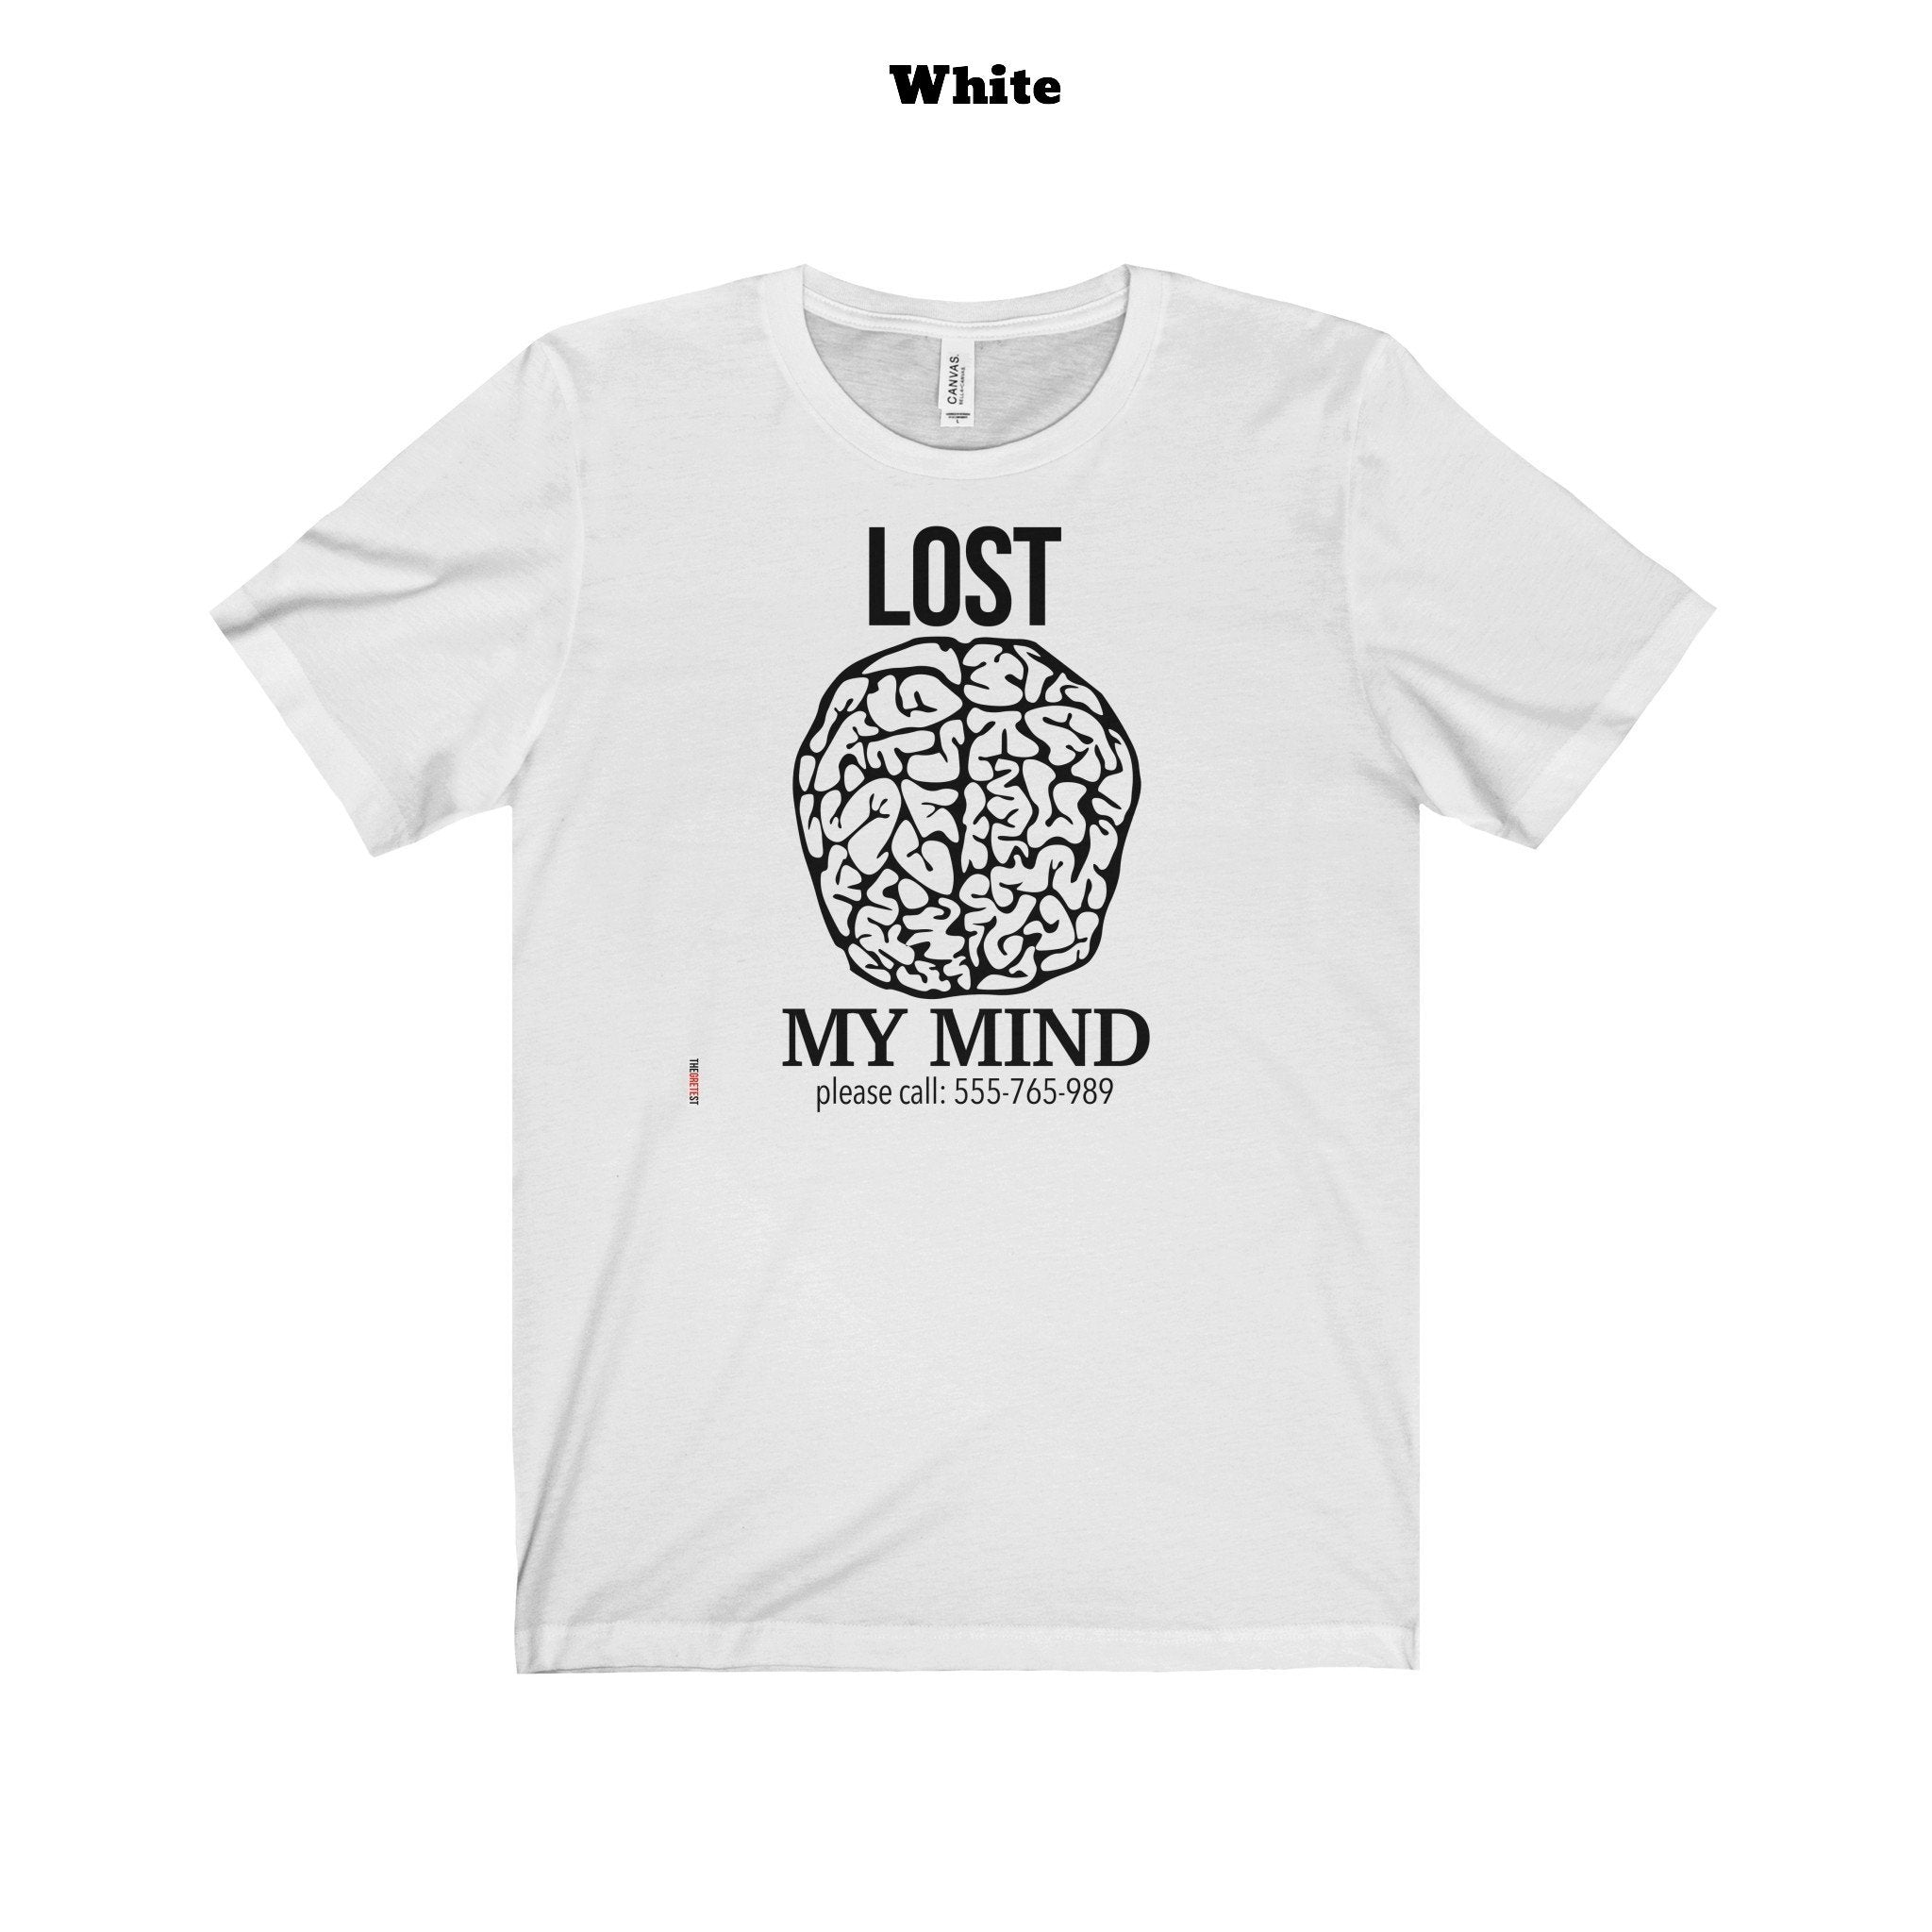 Lost my mind t-shirt (14 colors)-TheGretest